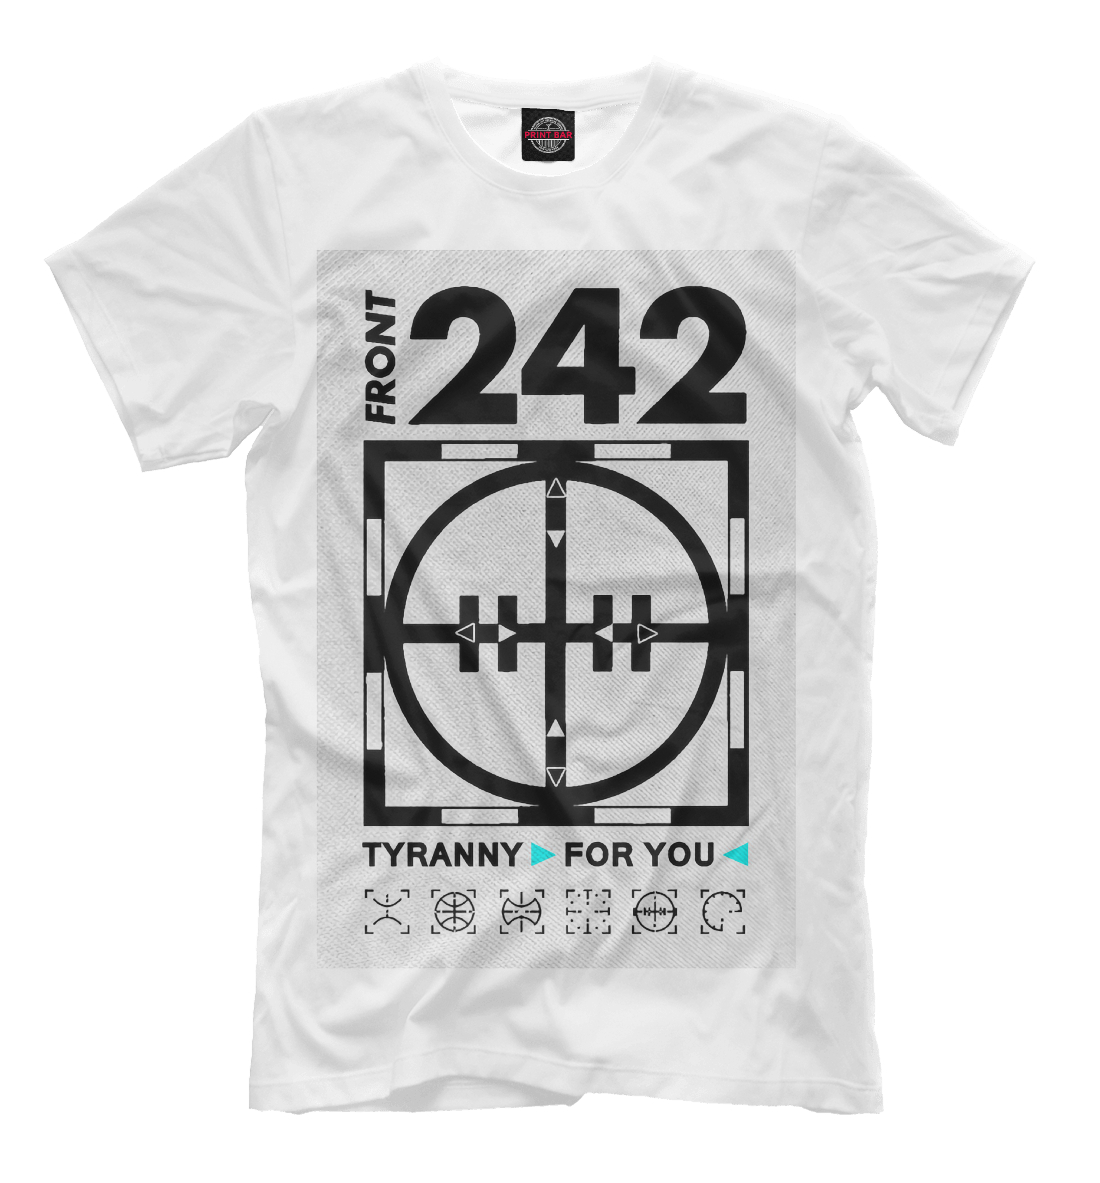 Front 242 Tyranny For You.